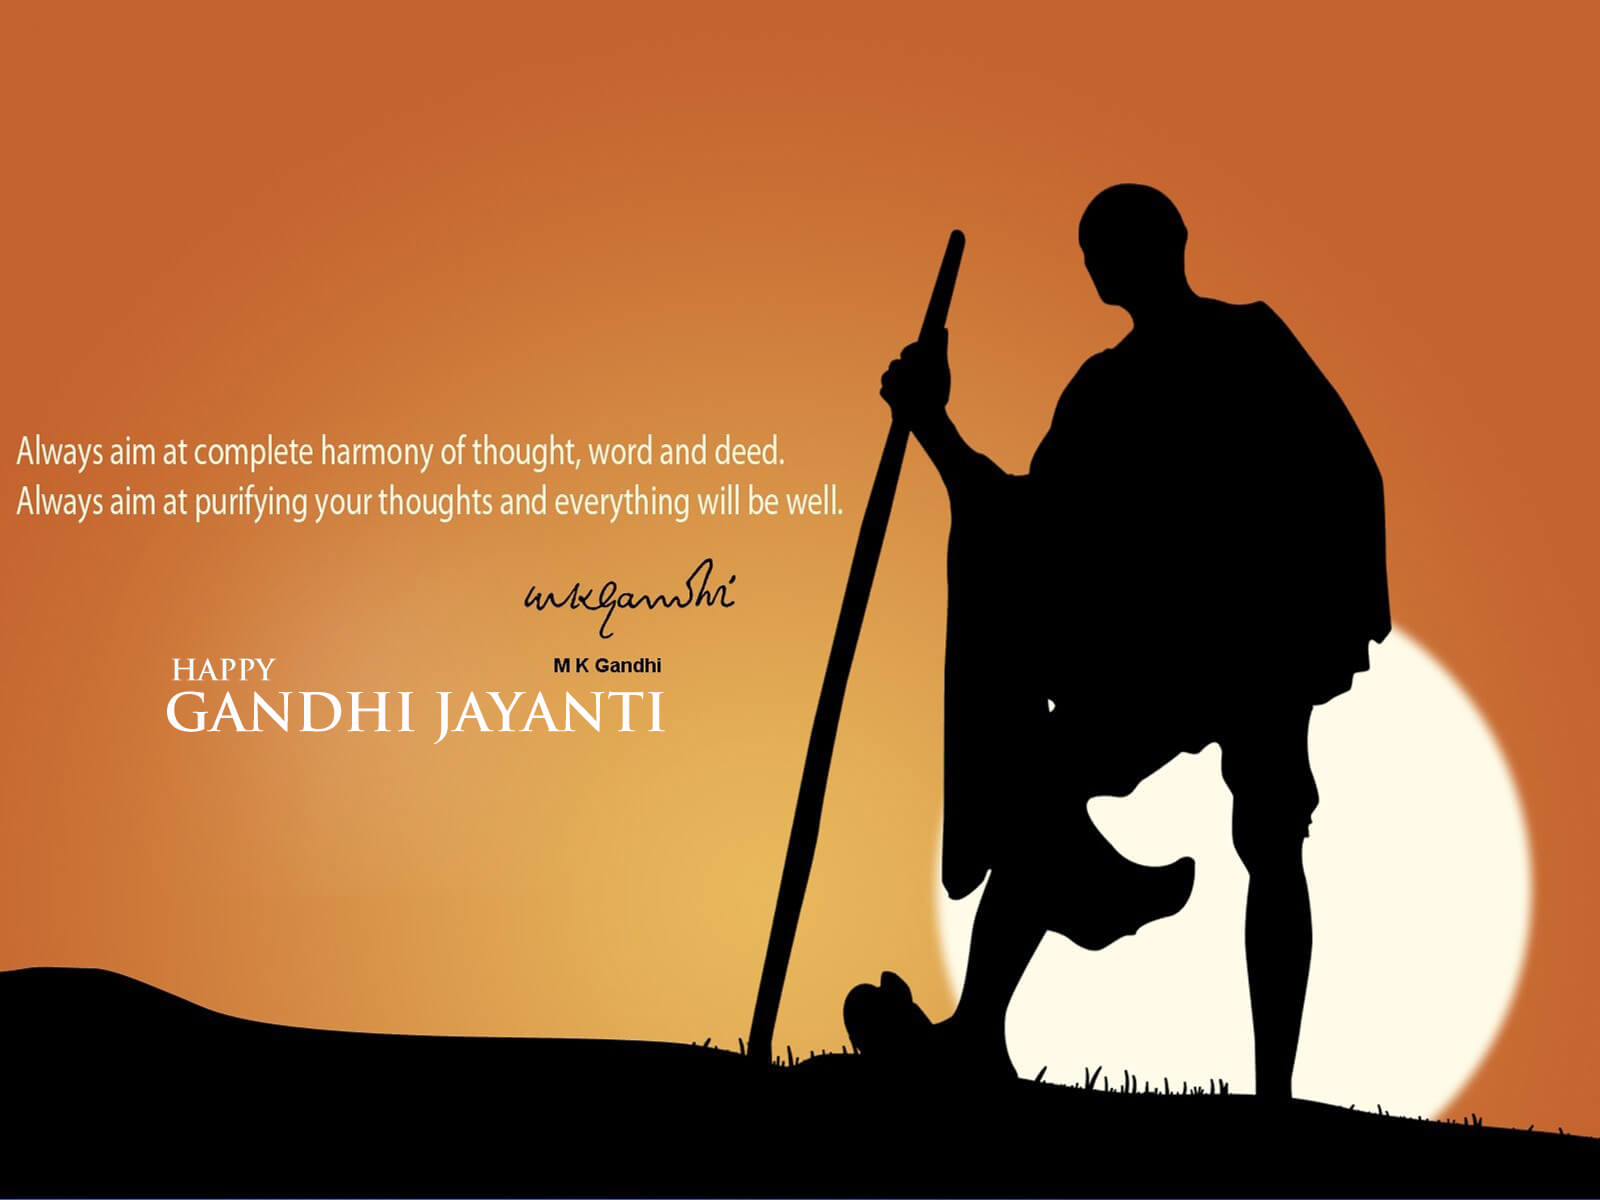 gandhi jayanti quotes wishes october 2 wallpaper